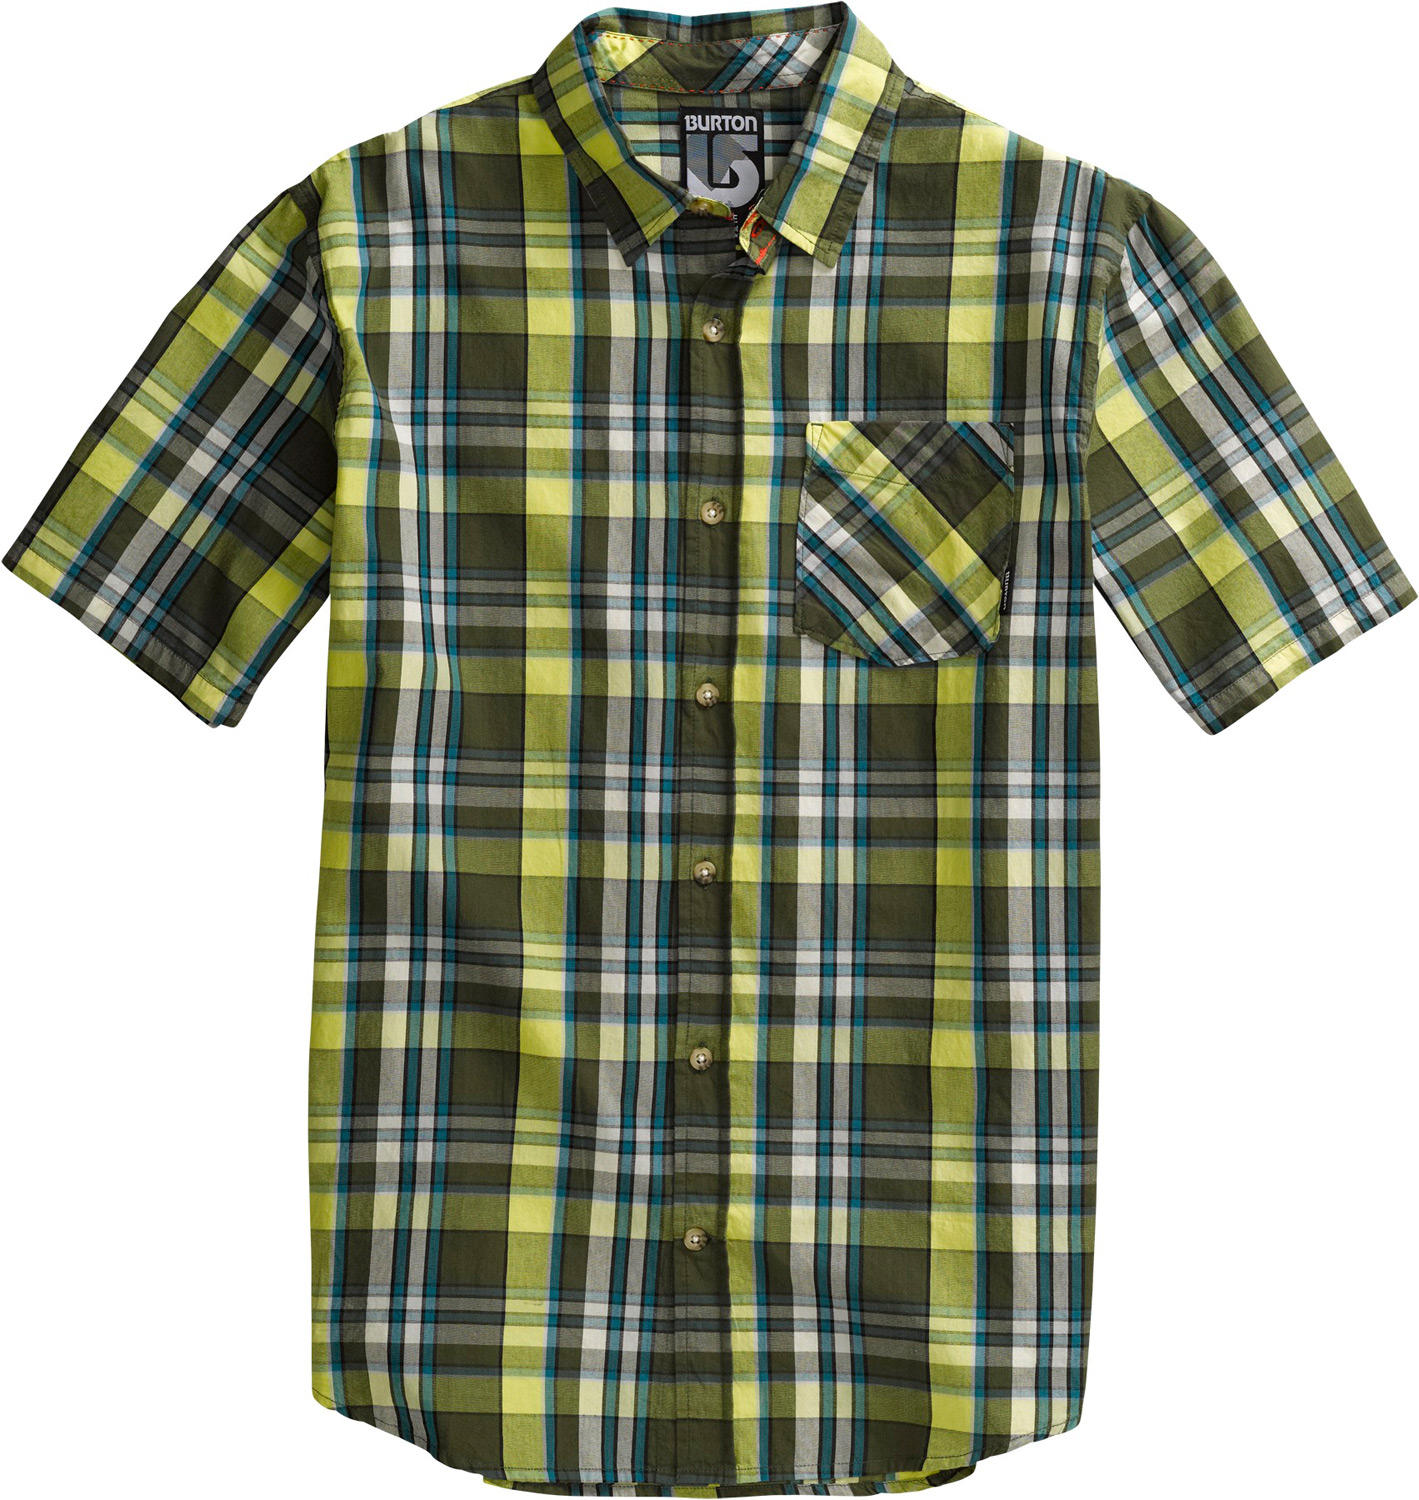 Snowboard Key Features of the Burton Wrench Shirt: 100% Cotton Lightweight Yarn-Dyed short sleeve button-up Sig Fit - $33.95